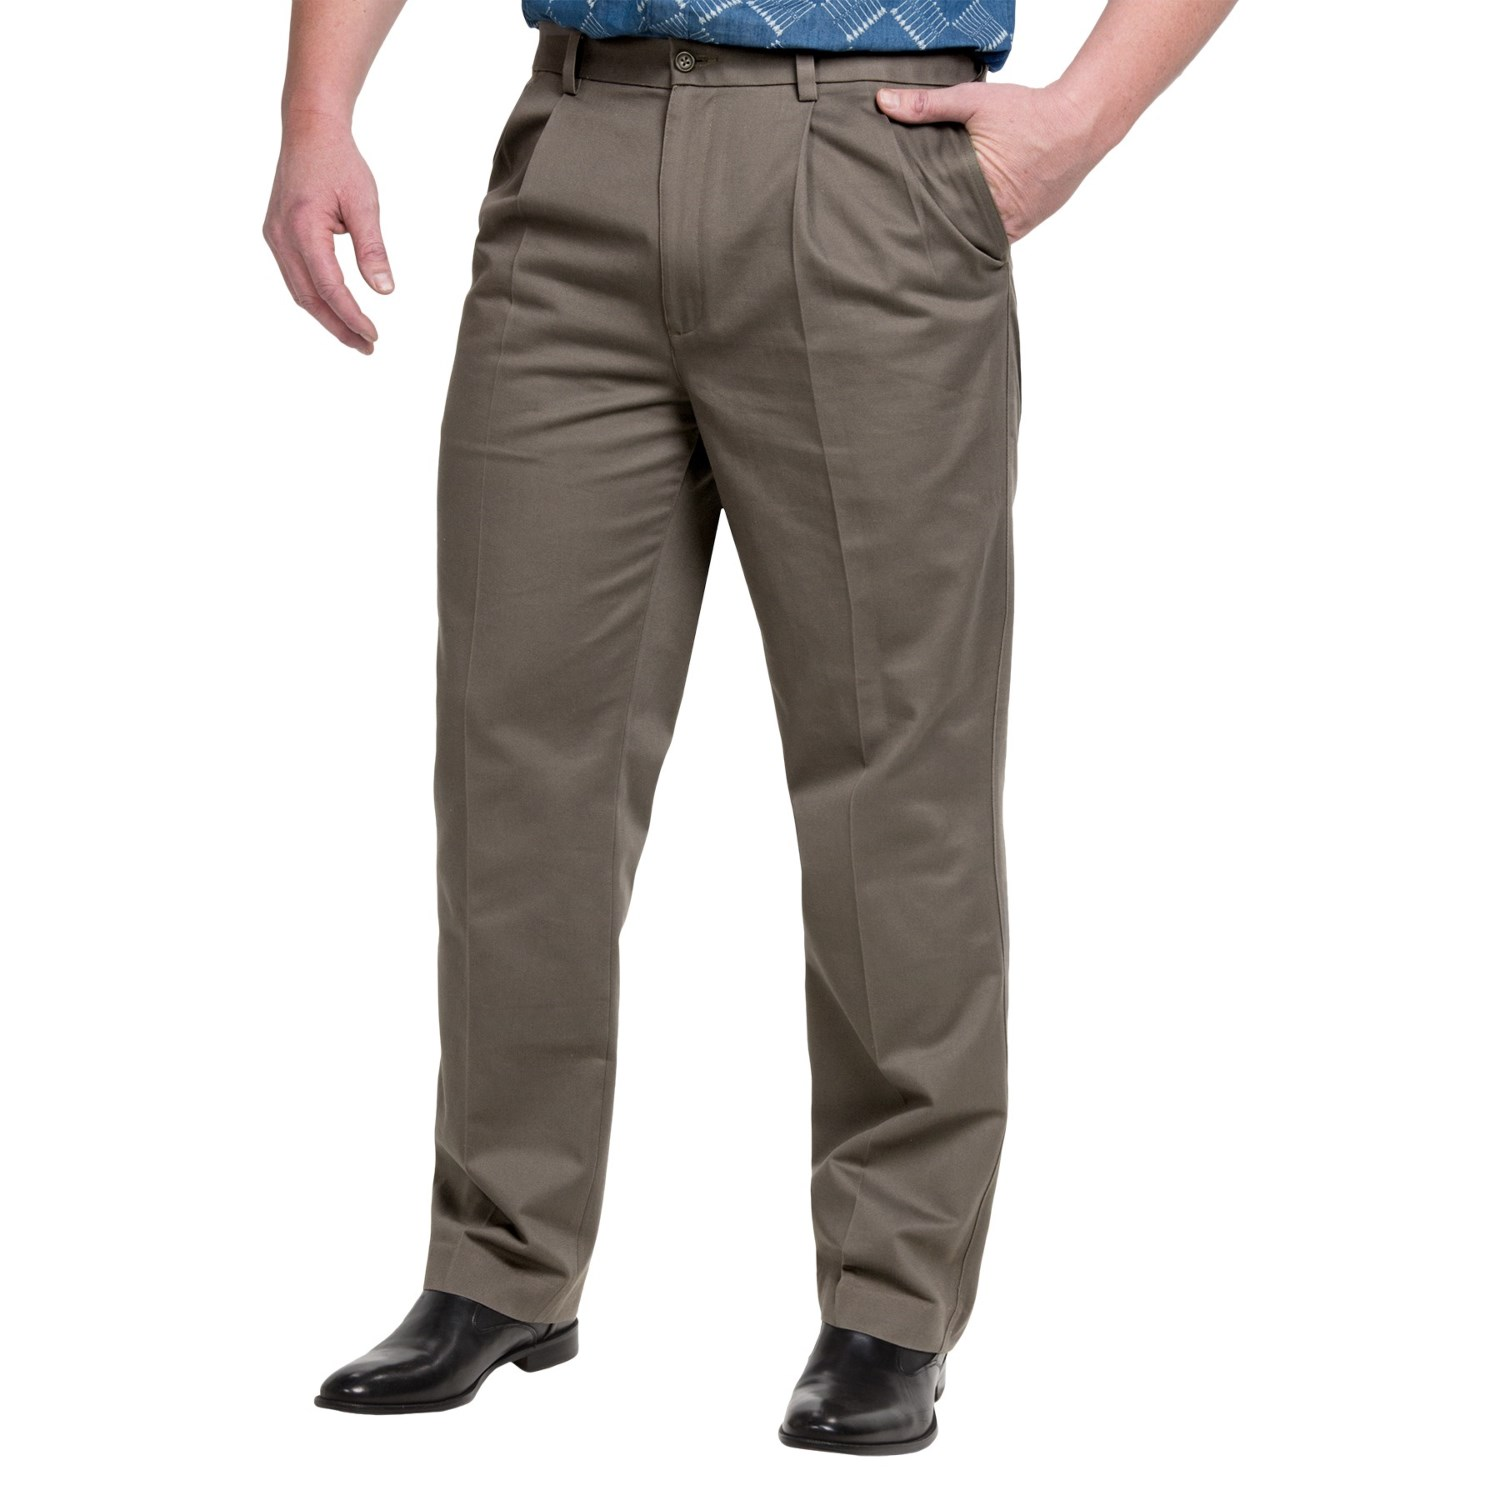 Pleated Cotton Pants (For Men) - Save 75%